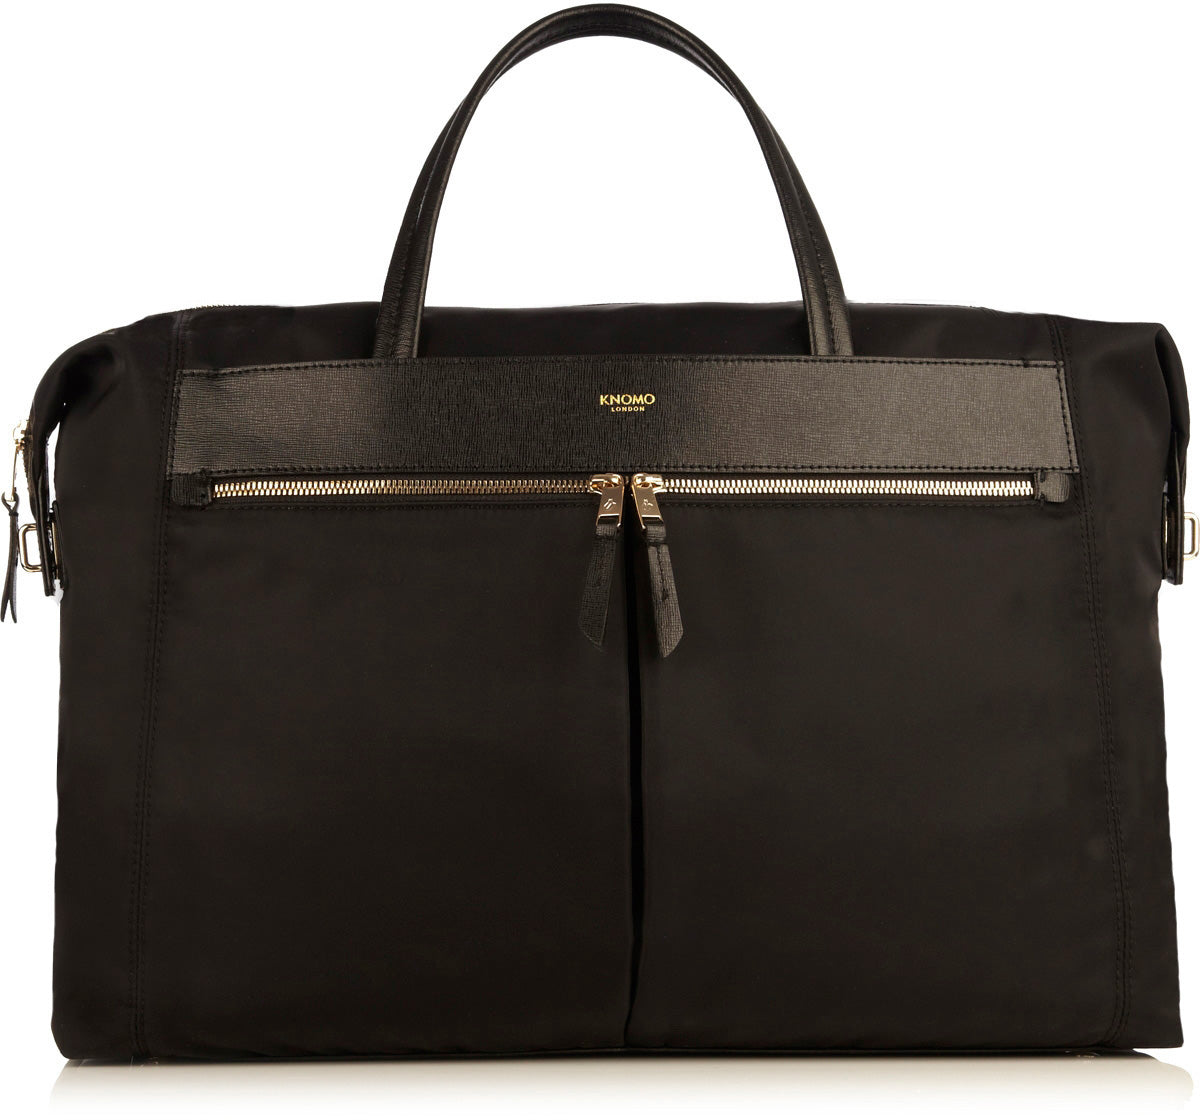 Knomo Mayfair Dover Tote W/ Shoulder Strap